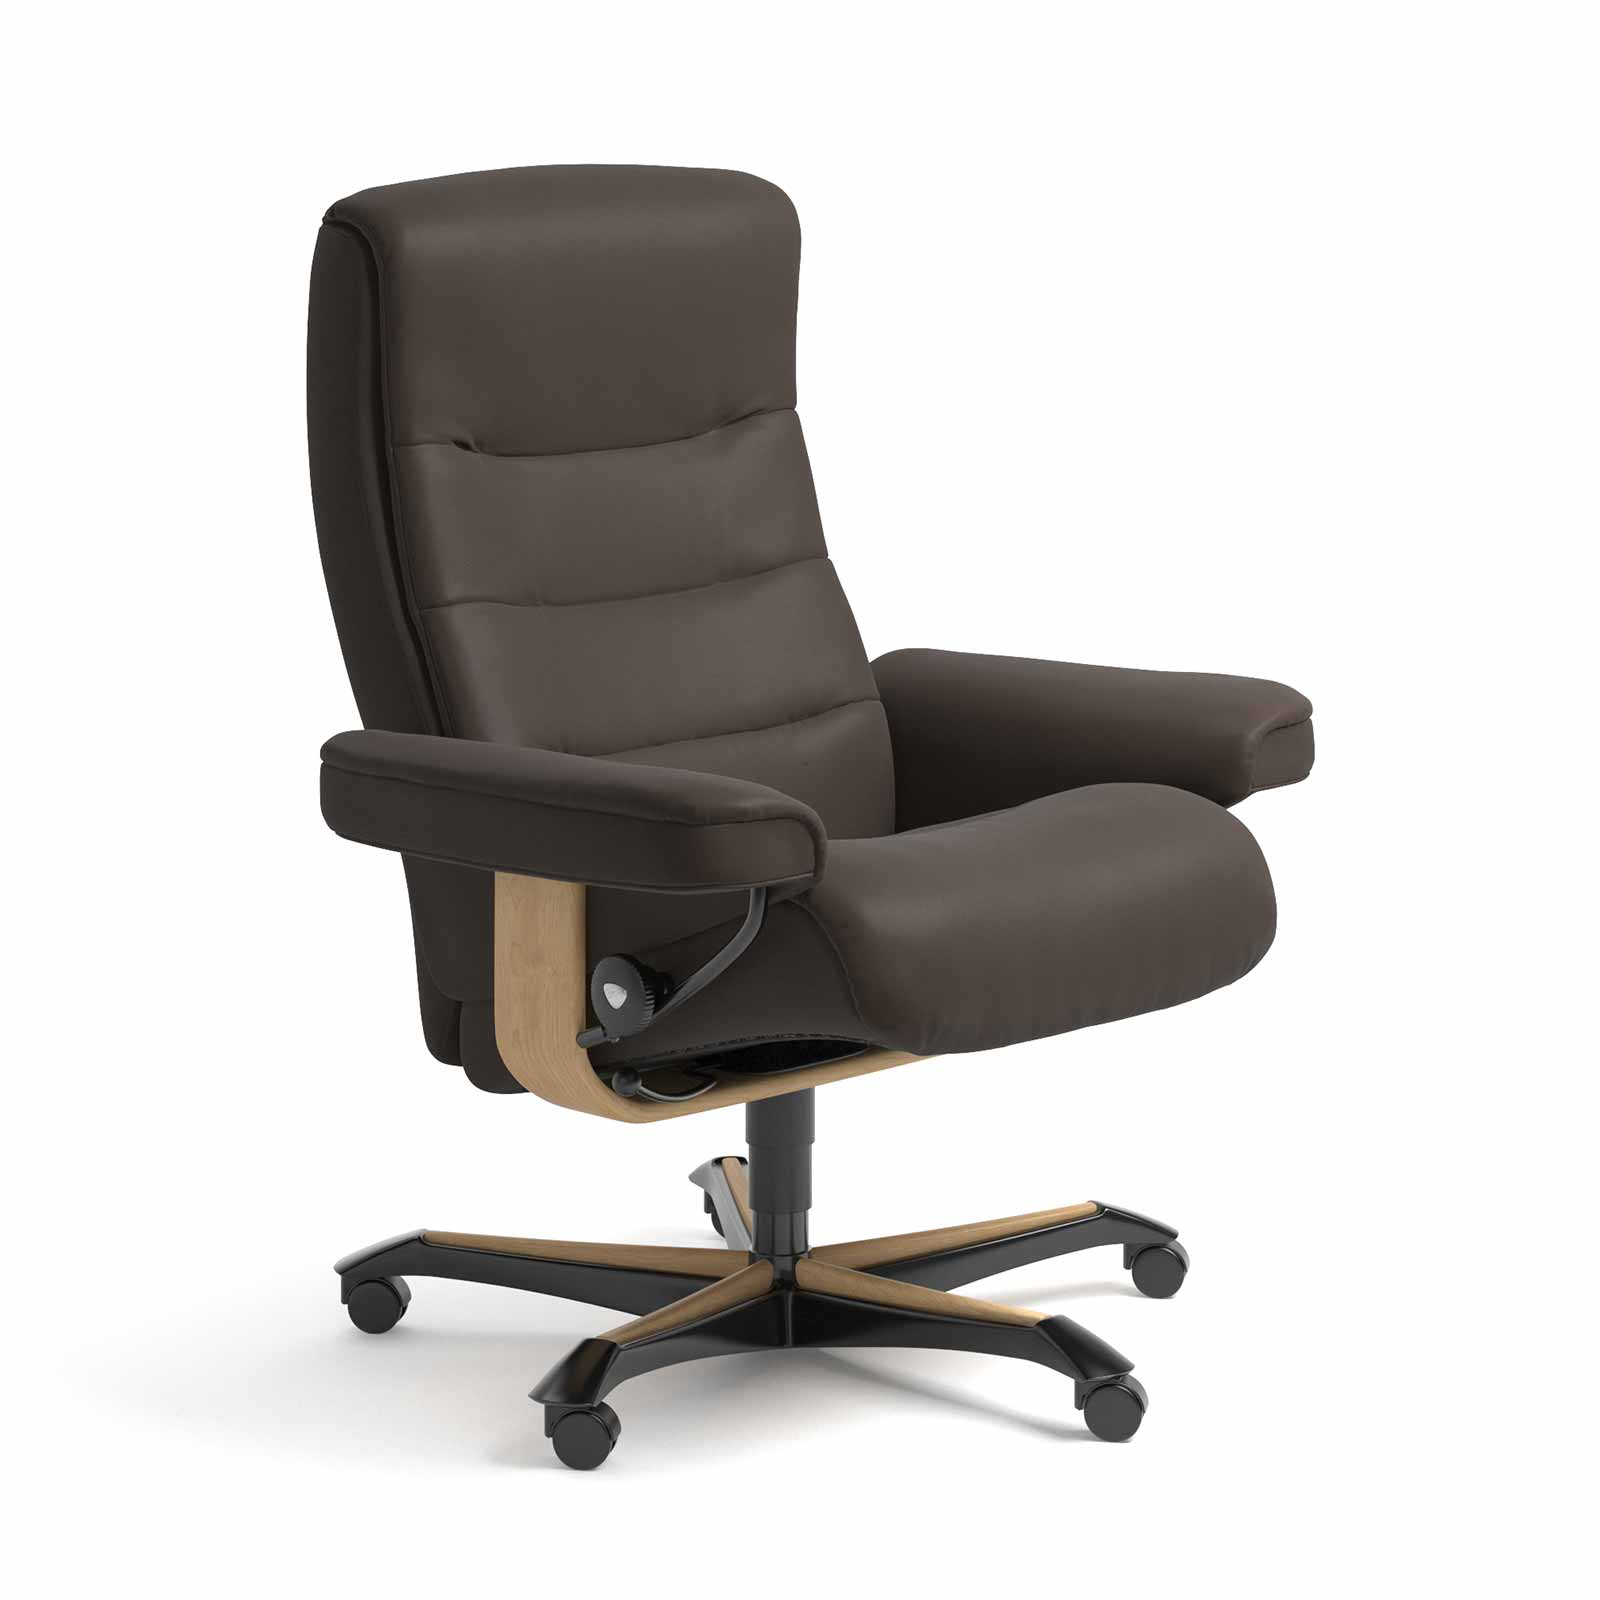 Stressless Sessel Demontage Stressless Sessel Braun